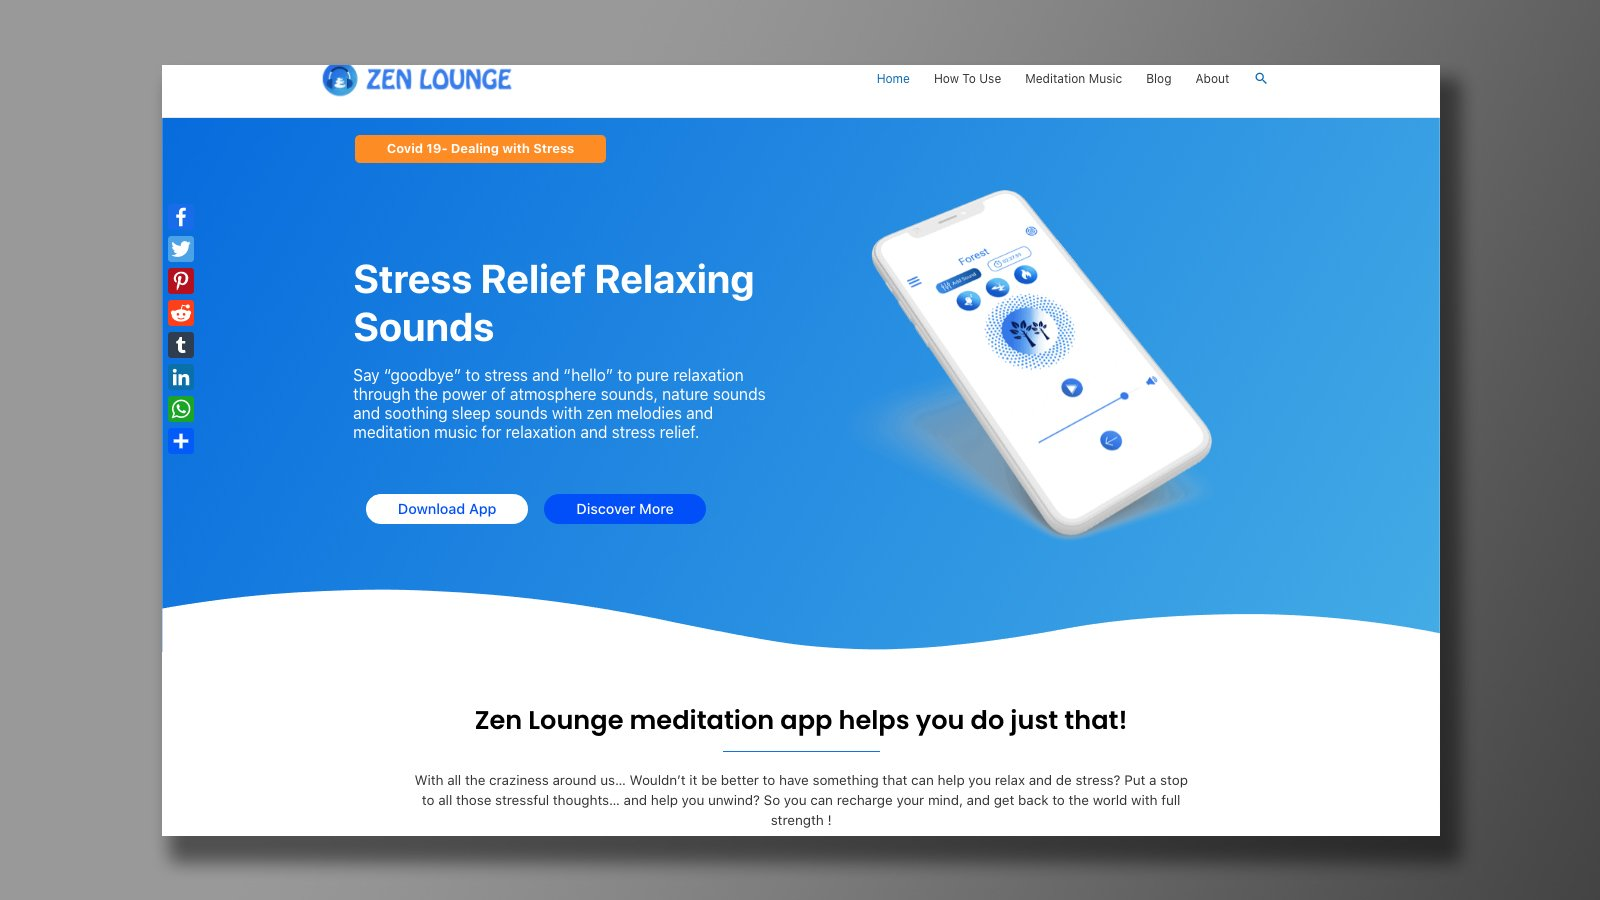 Zen Lounge website